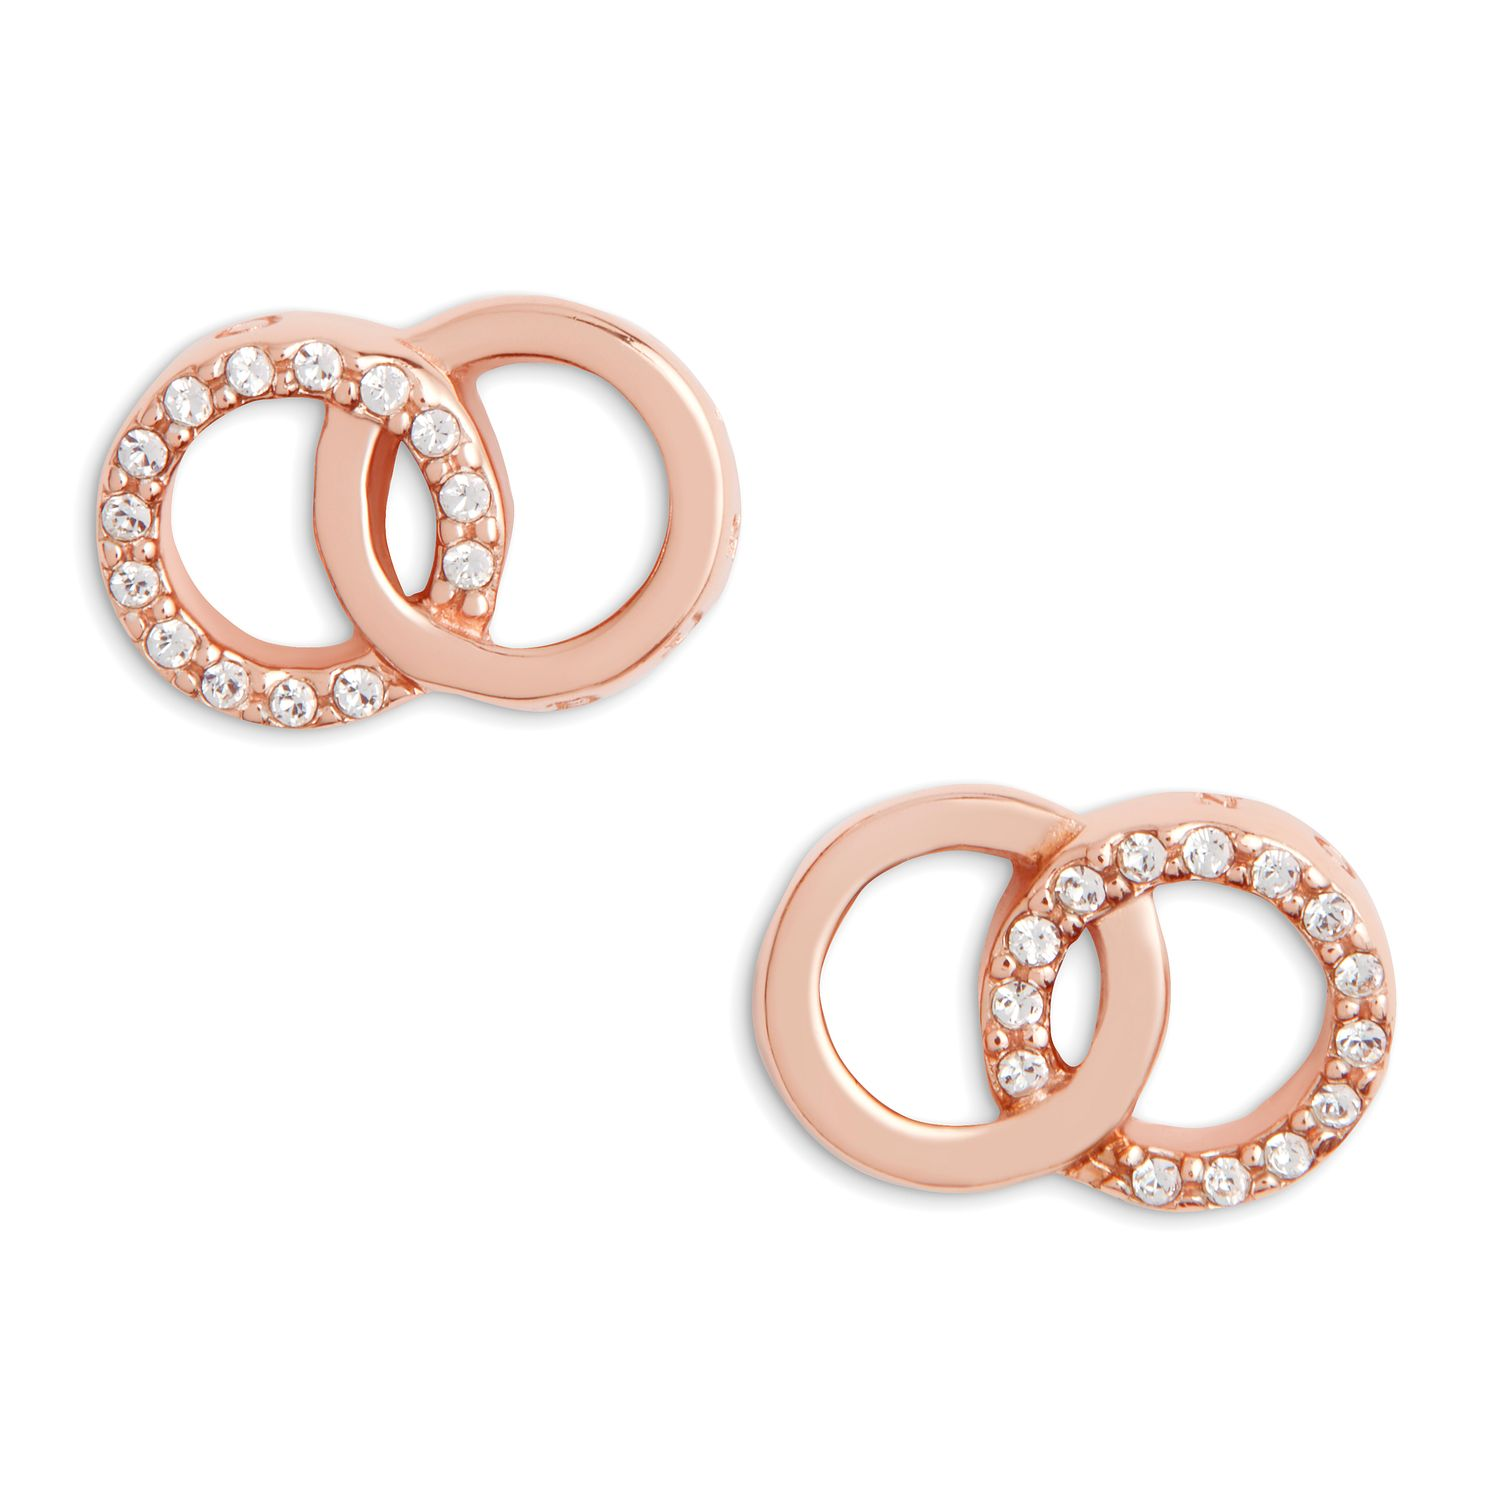 Olivia Burton Classics Interlink Rose Gold Tone Earrings - Product number 5247365